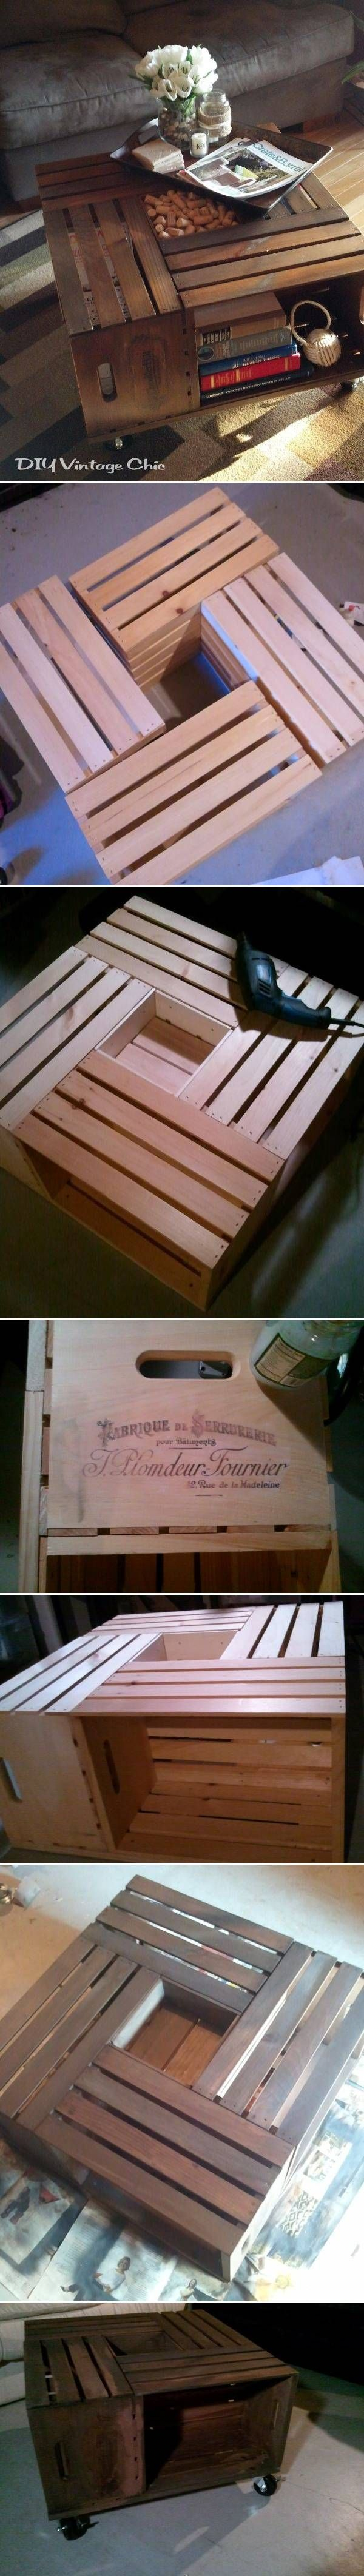 DIY Wine Crate Table Crafts Craft Diy Craft Easy Crafts Diy Ideas Diy  Crafts Do It Yourself Crafty Easy Diy Diy Furniture Craft Furniture Diy ...